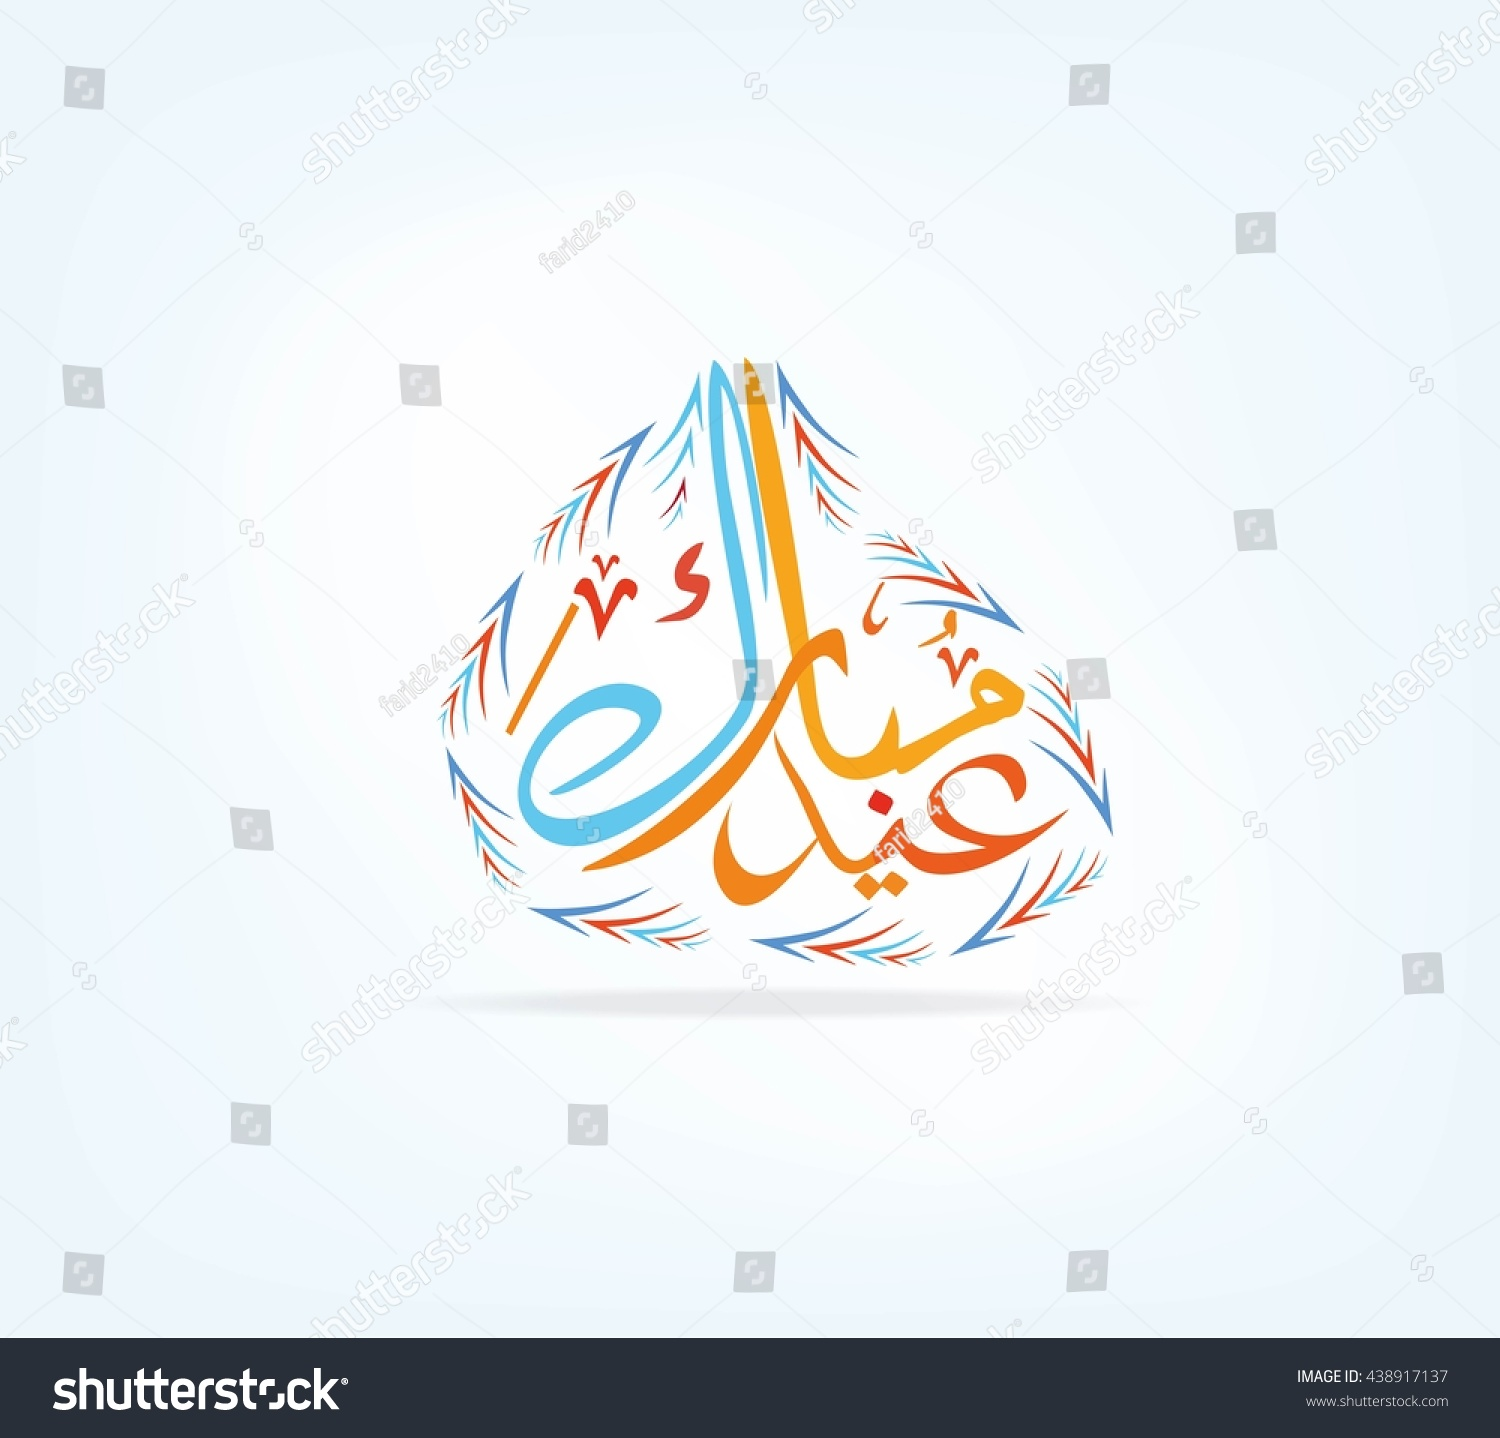 Eid Mubarak Blessed Festival in arabic calligraphy style which is a traditional Muslim greeting during the festivals of Eid ul-Adha and Eid-Fitr Eid Moubarak